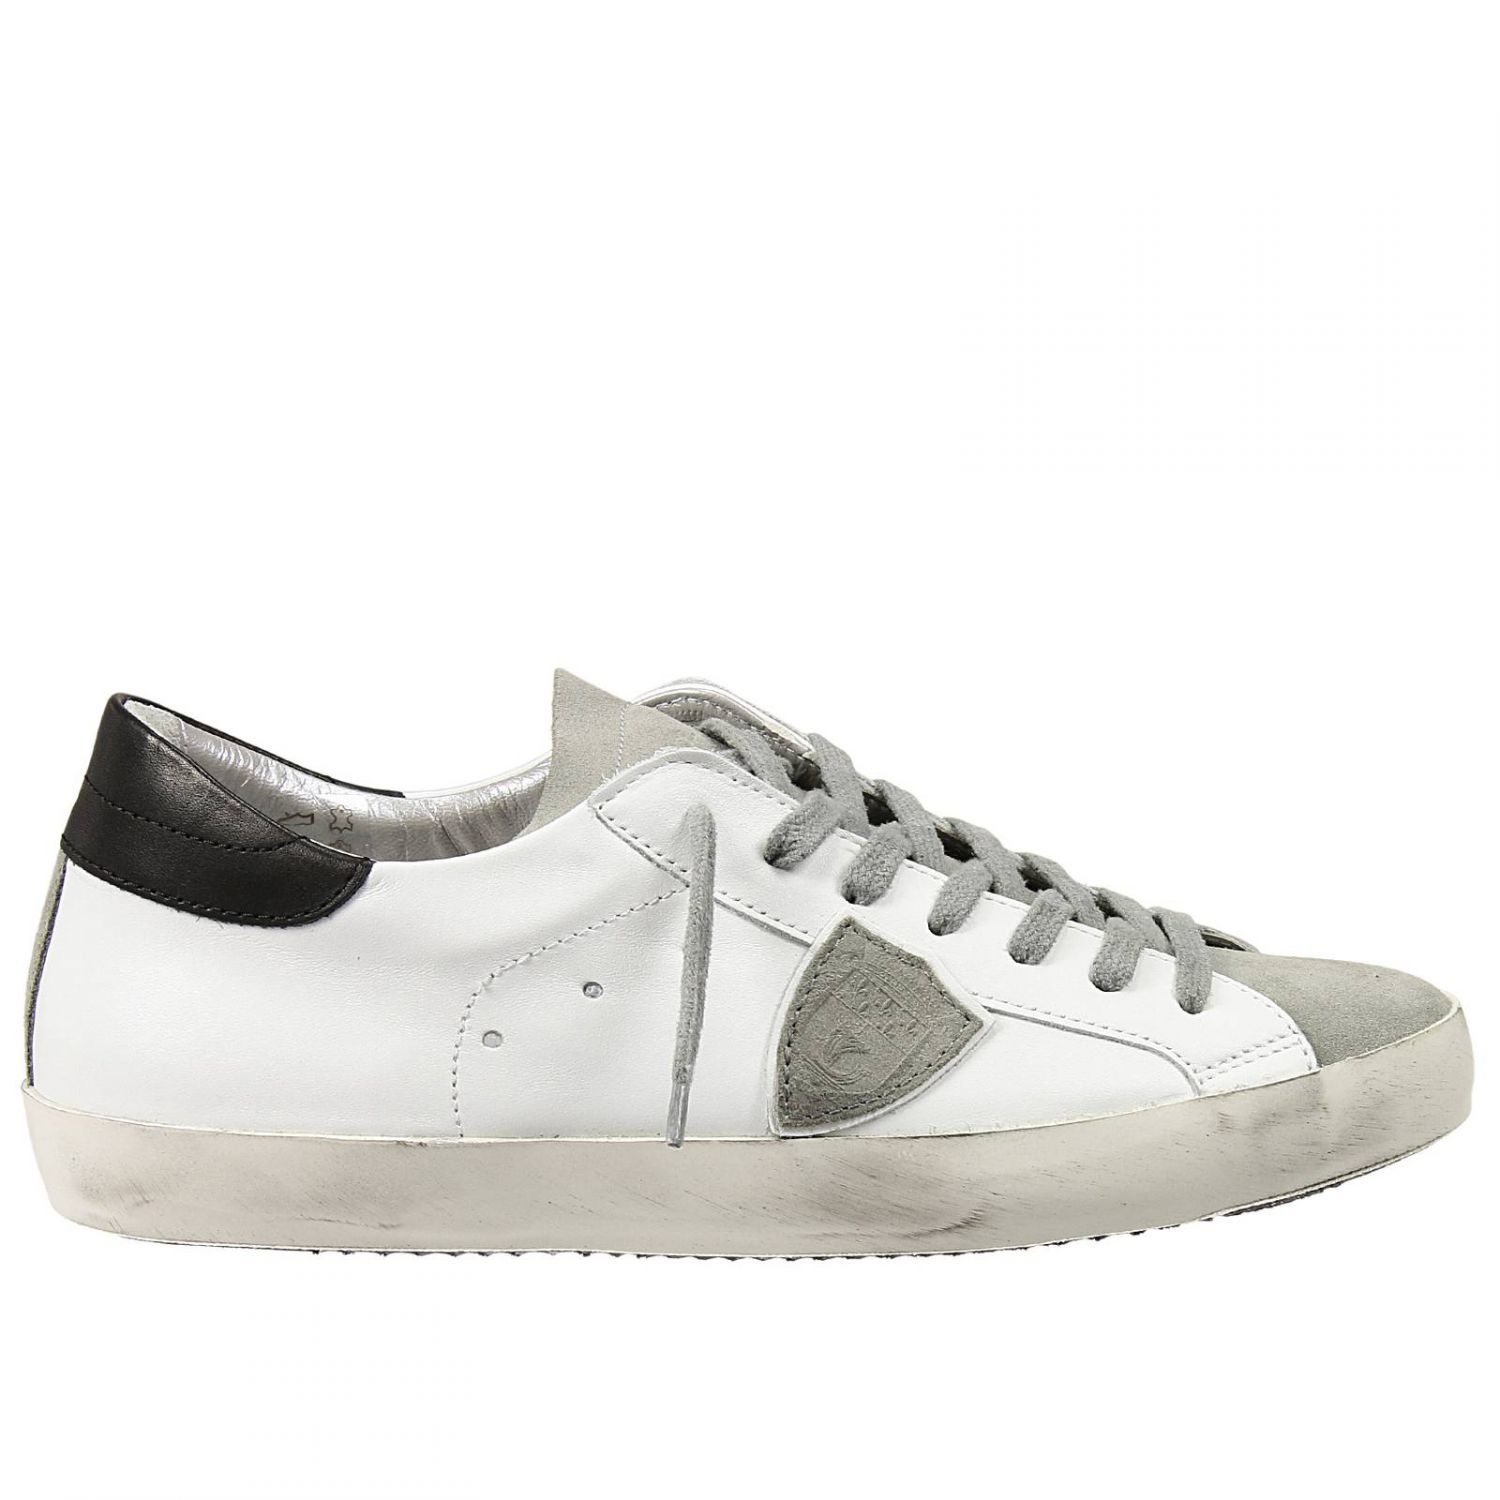 philippe model sneakers in white for men lyst. Black Bedroom Furniture Sets. Home Design Ideas